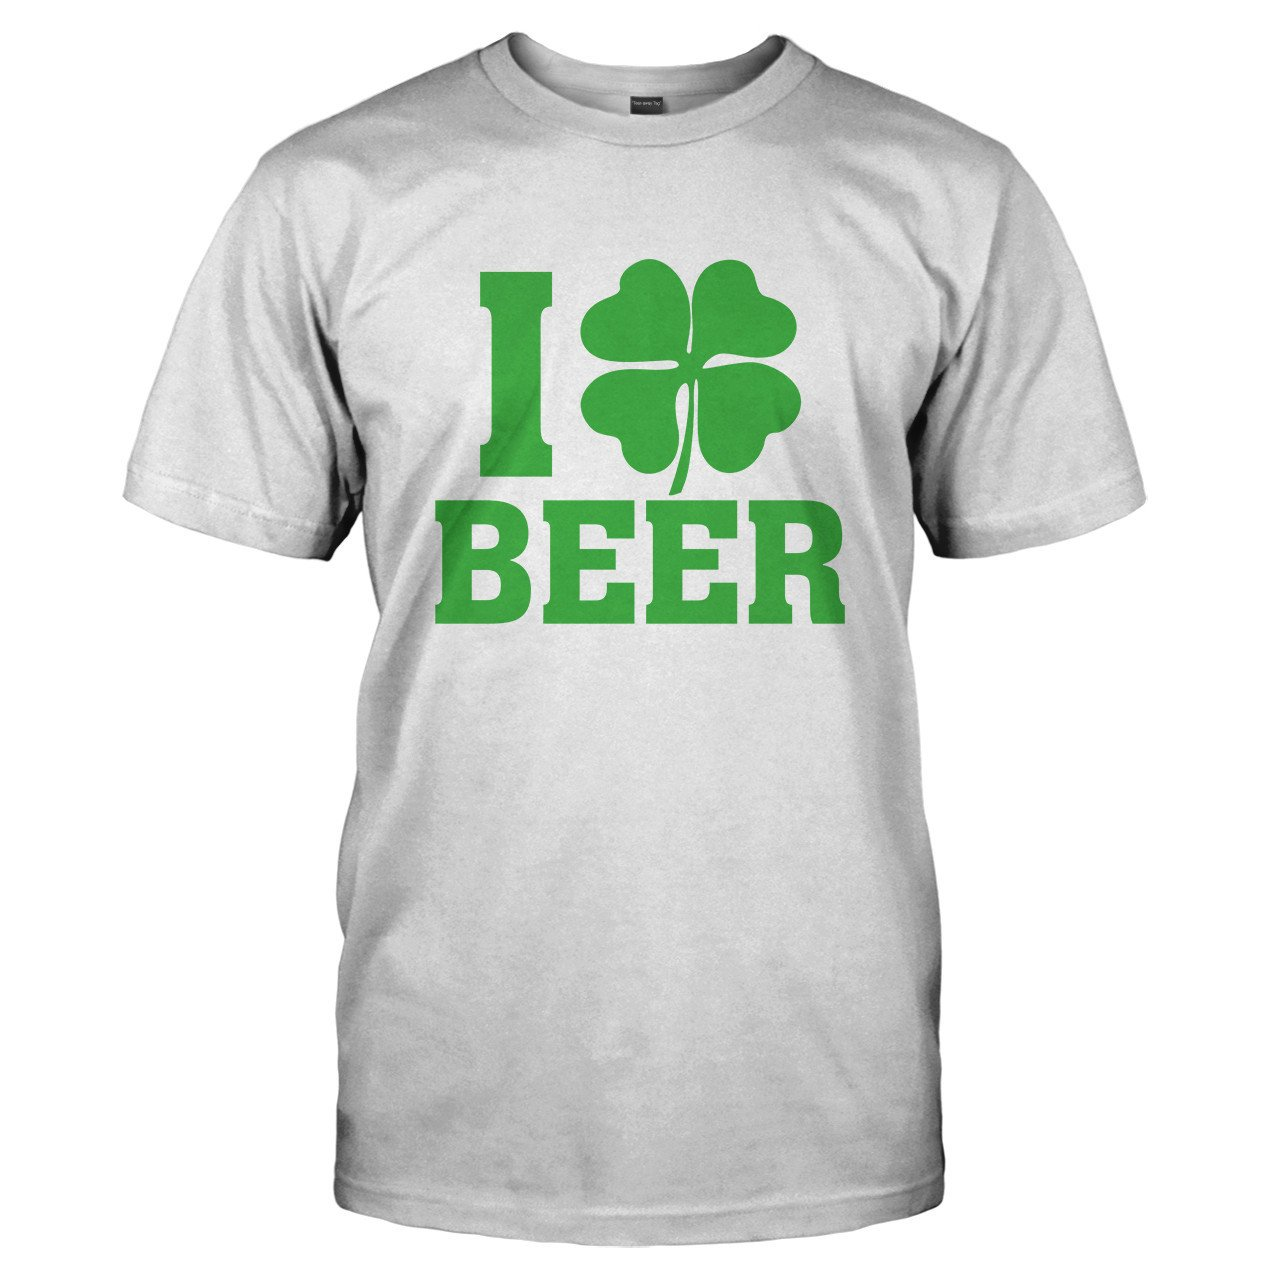 I Shamrock Beer - T Shirt